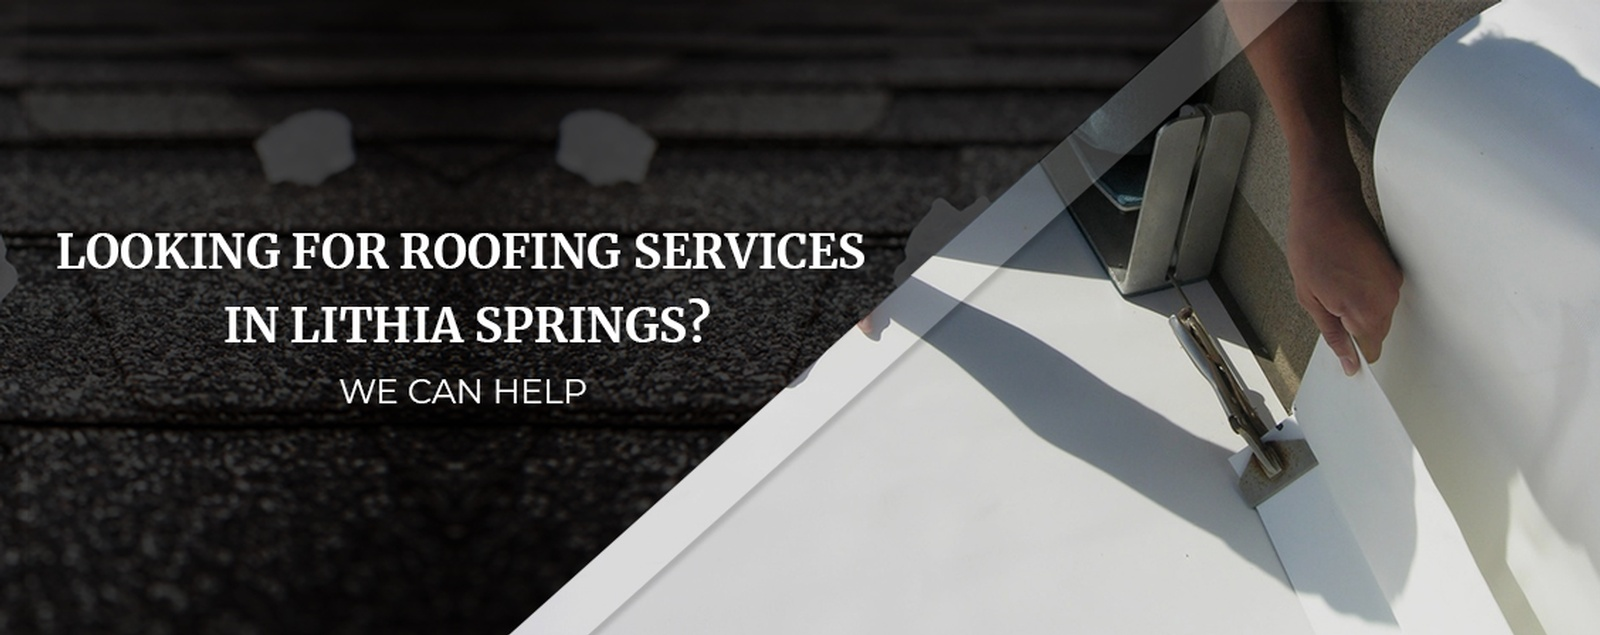 Looking For Roofing Services In Lithia Springs?We Can Help